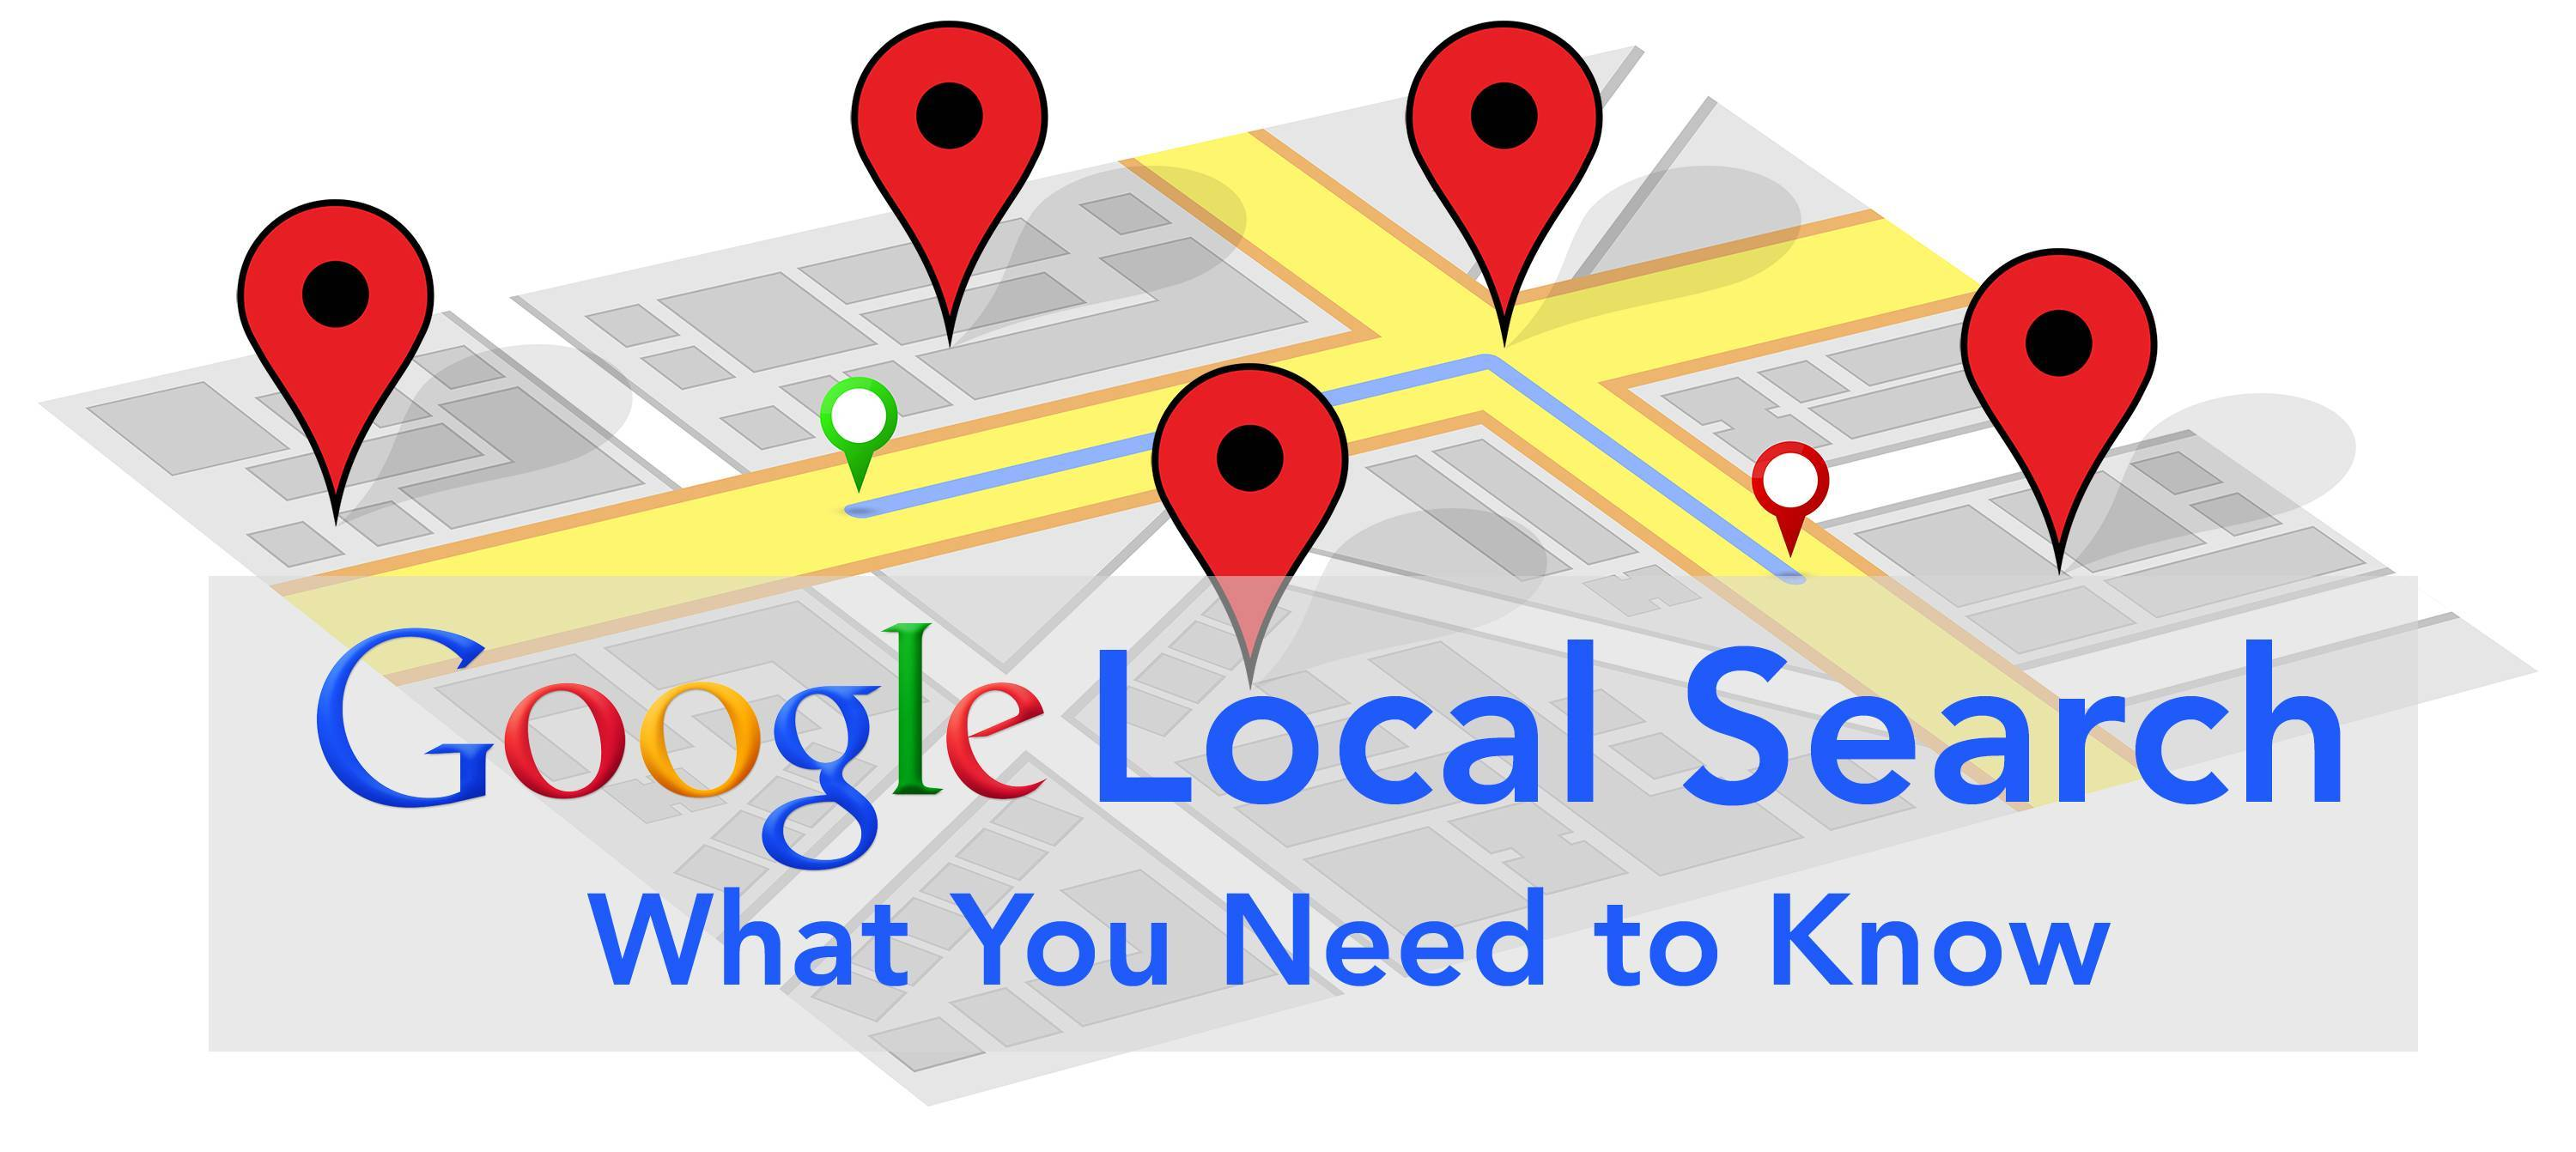 Google Local Search: What It Is And Why Itu0027s Important To Vacation Rental  Managers